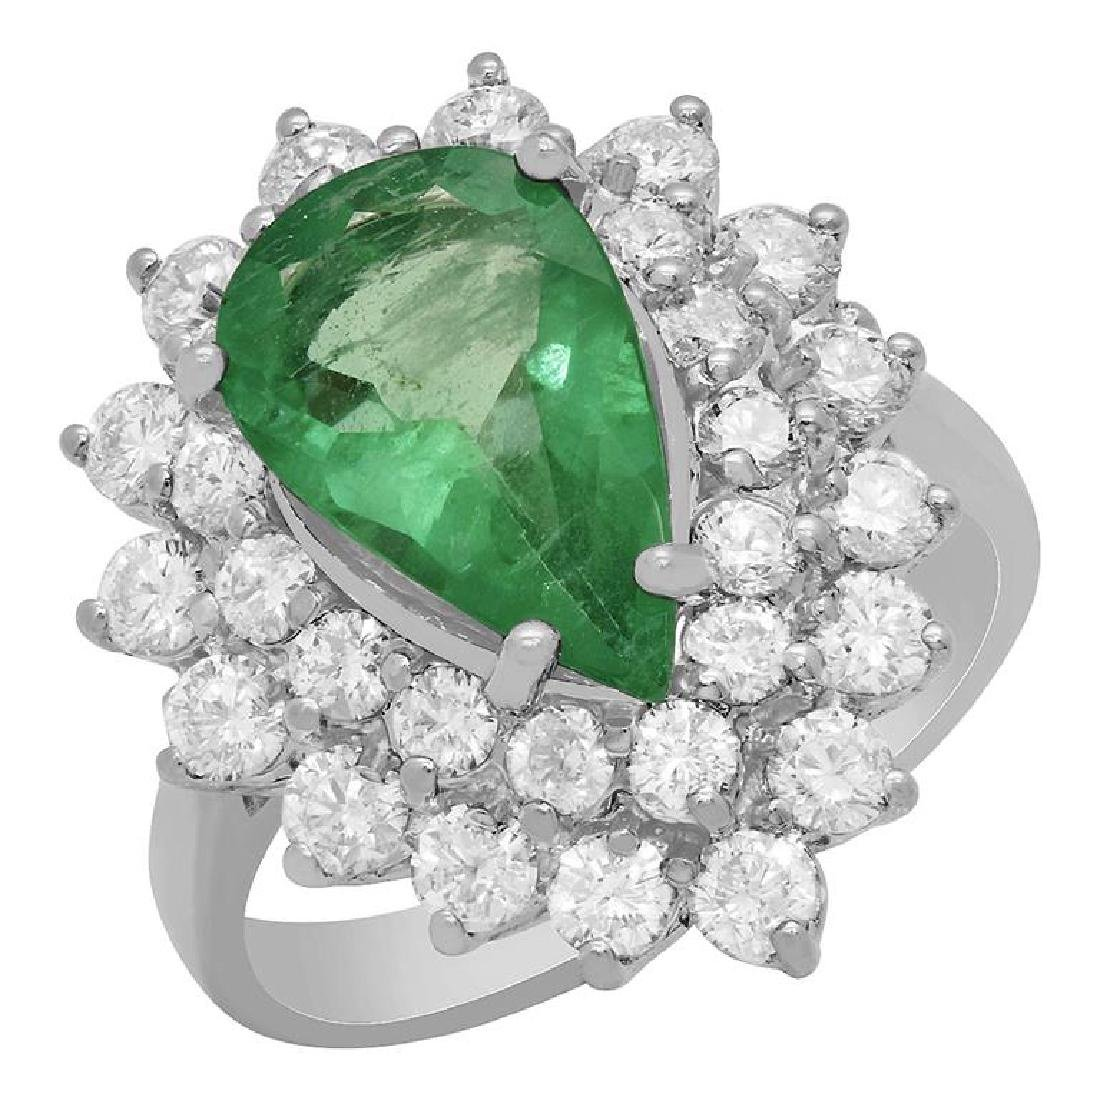 14k White Gold 2.10ct Emerald 1.69ct Diamond Ring